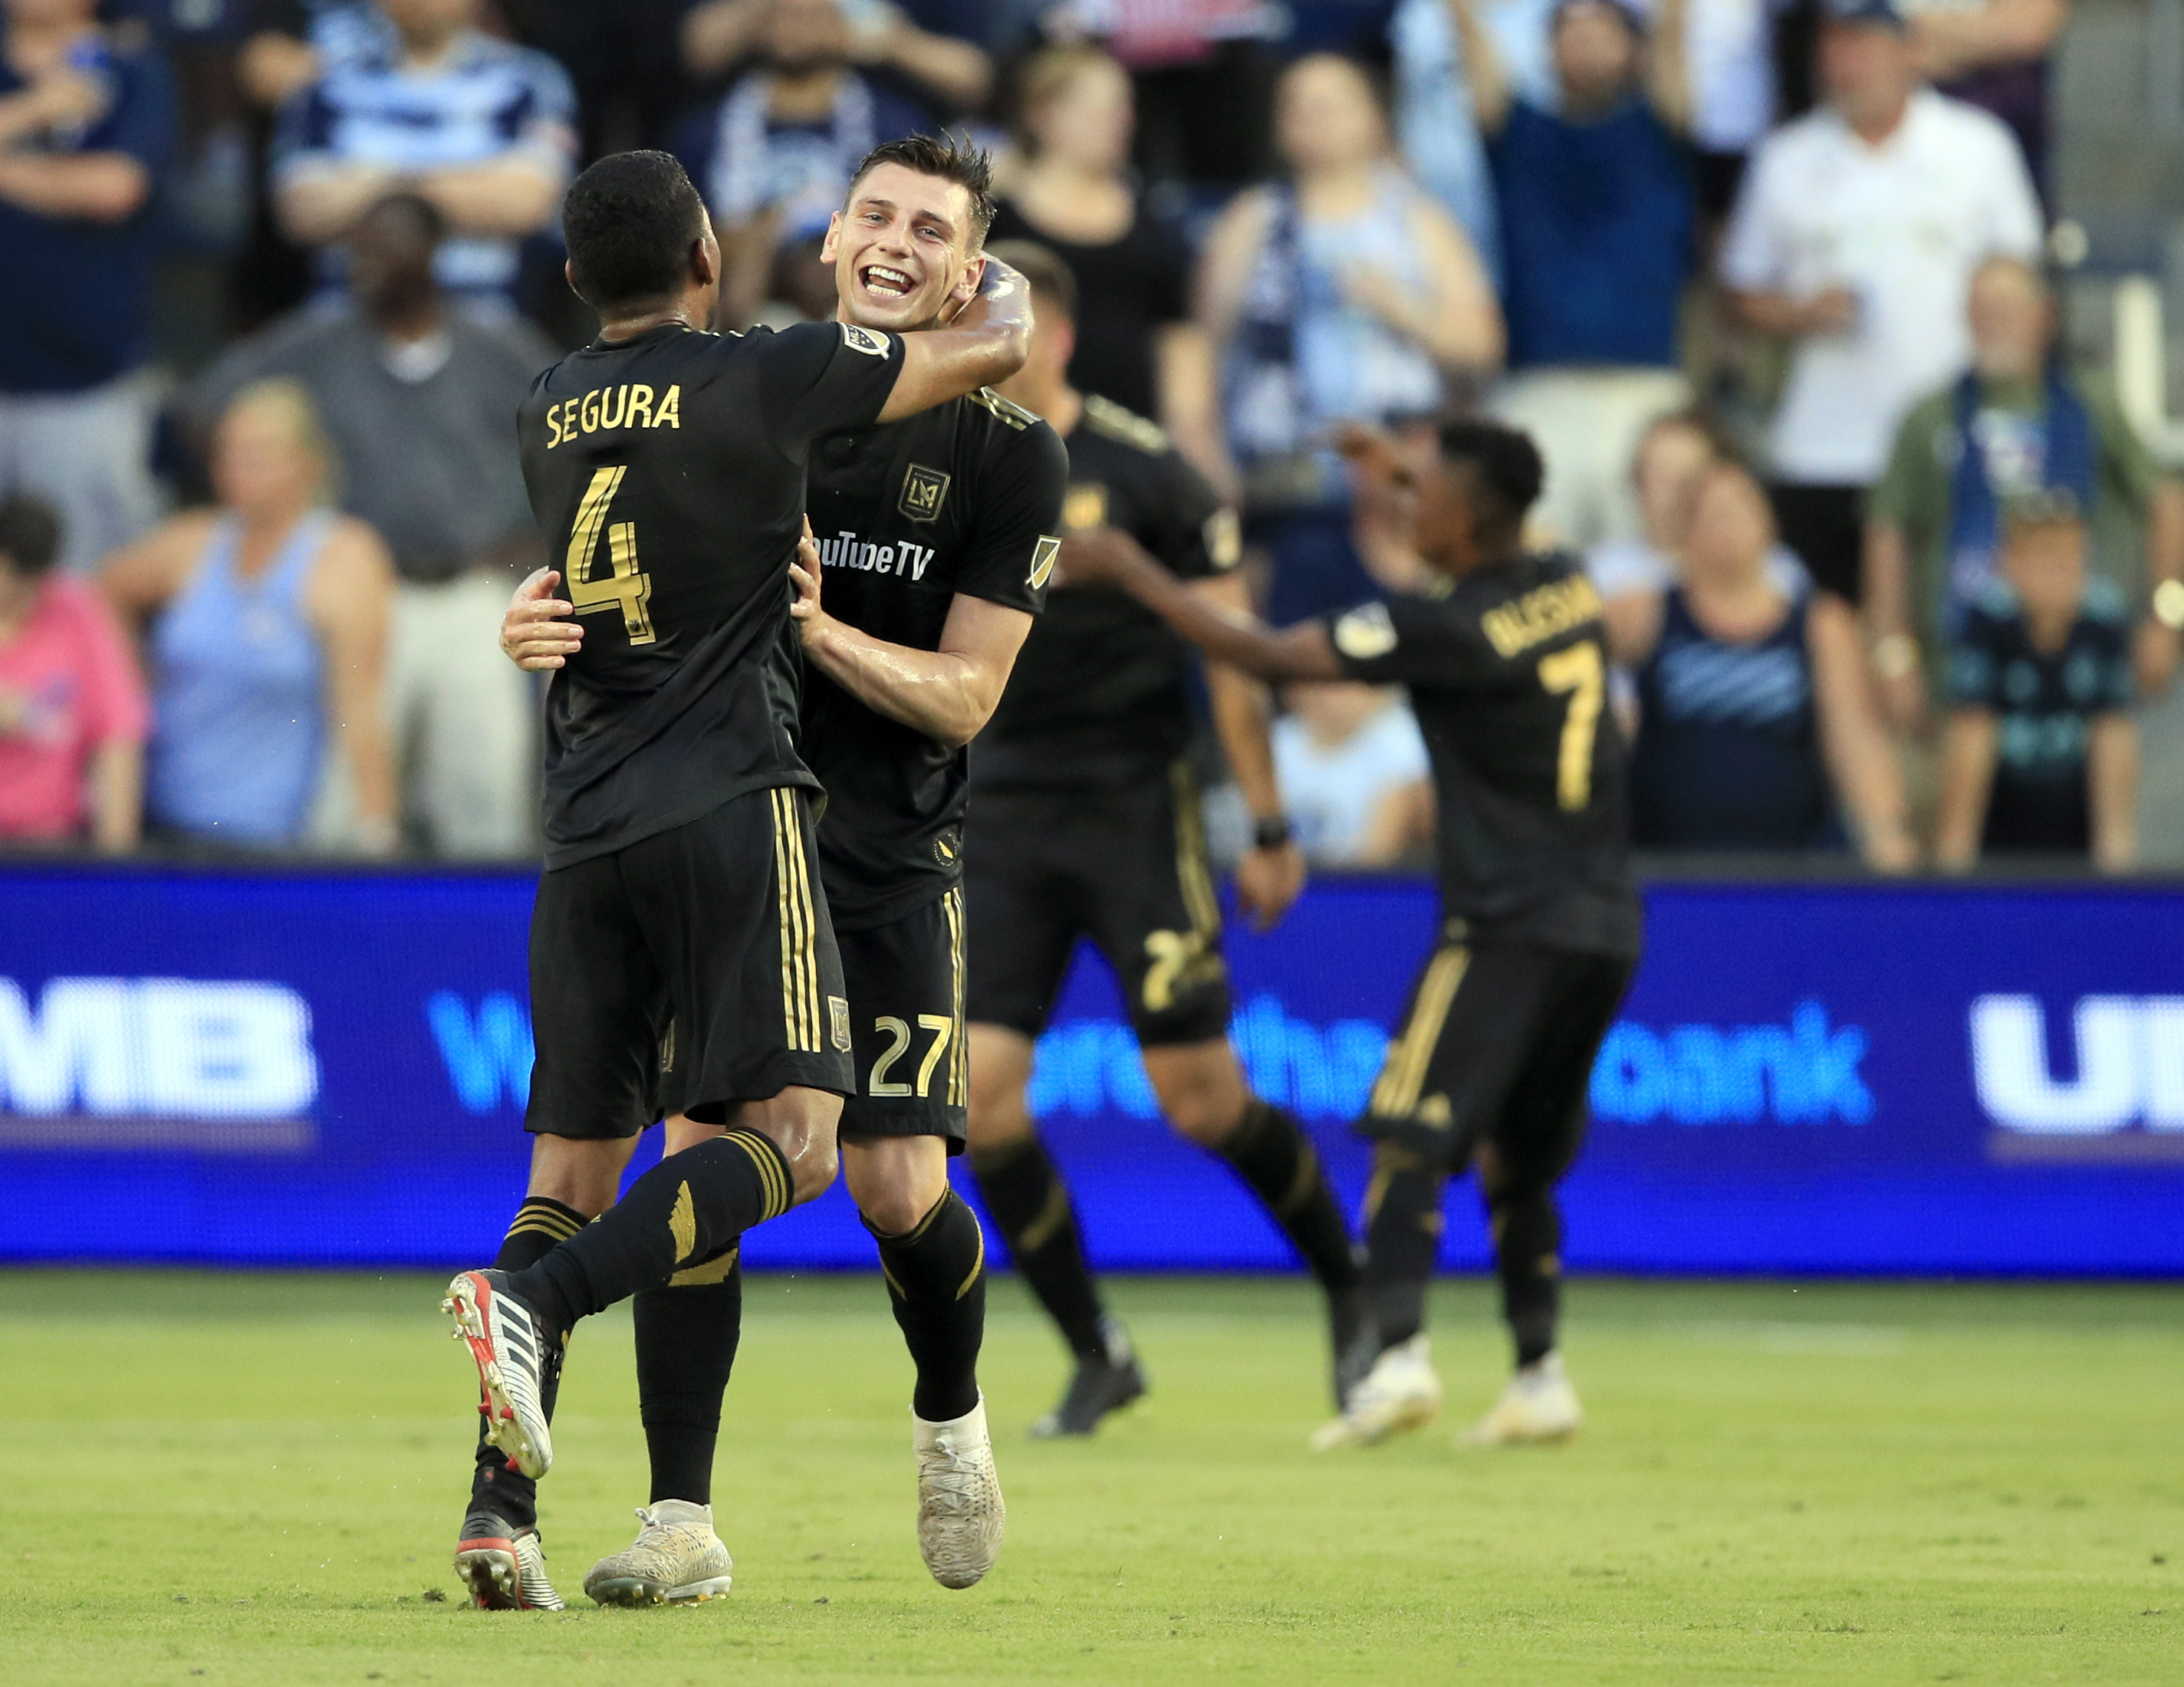 Vela scores 17th goal, Rossi gets 9th; LAFC beats Sporting